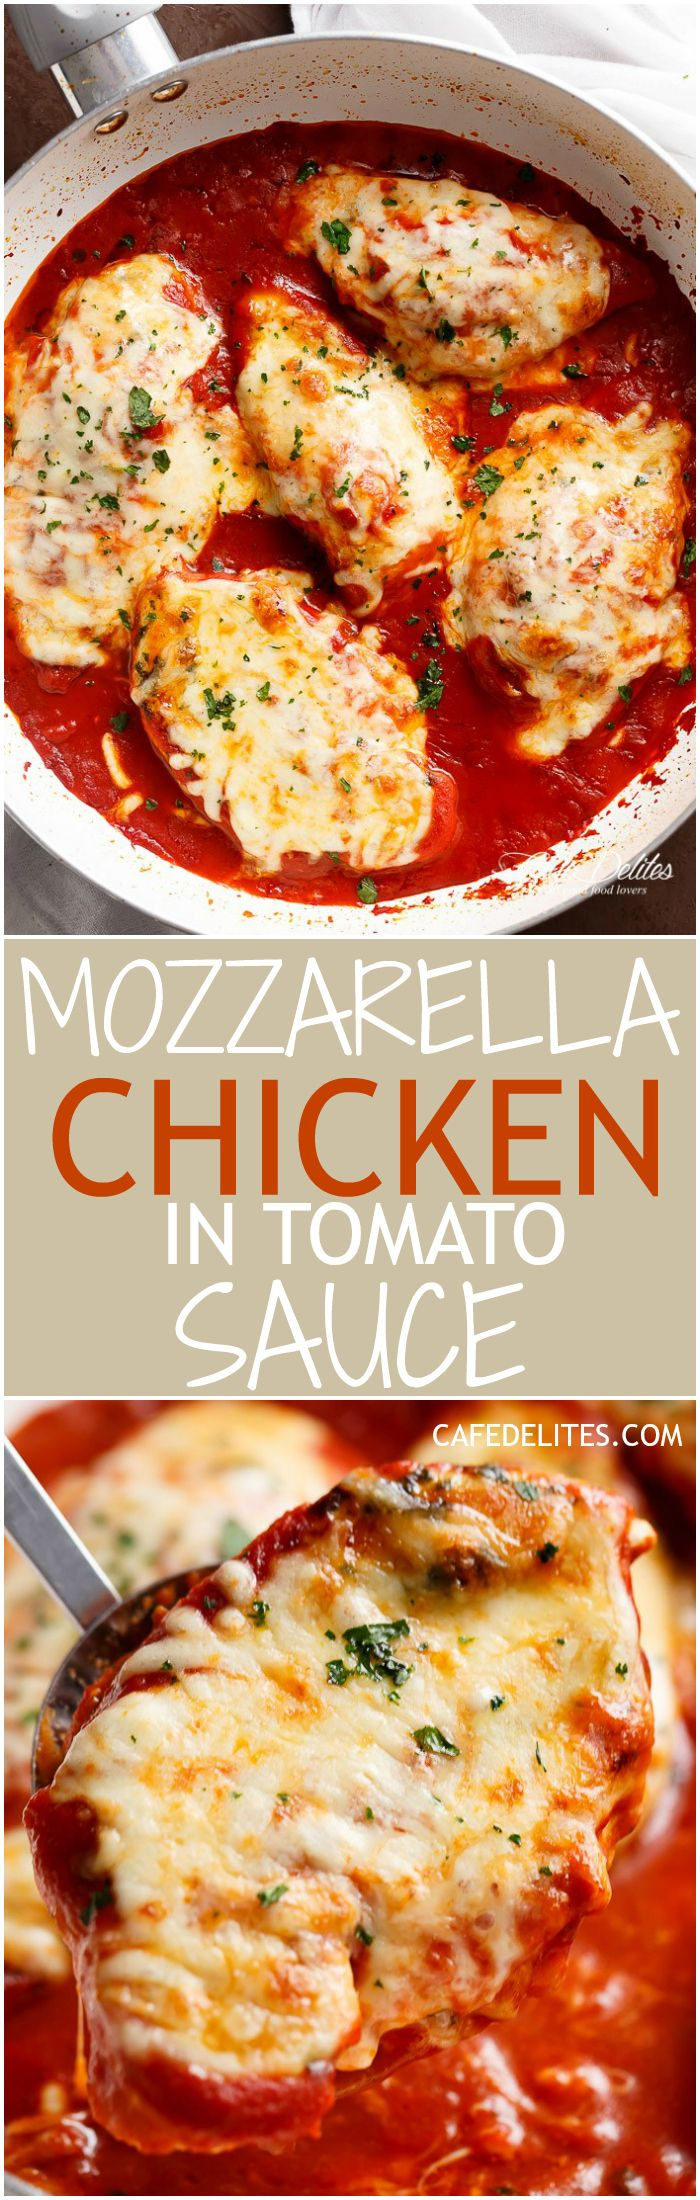 A quick and easy Mozzarella Chicken In Tomato Sauce made in the one skillet in under 15 min! A restaurant quality dinner full of flavour in half the time.